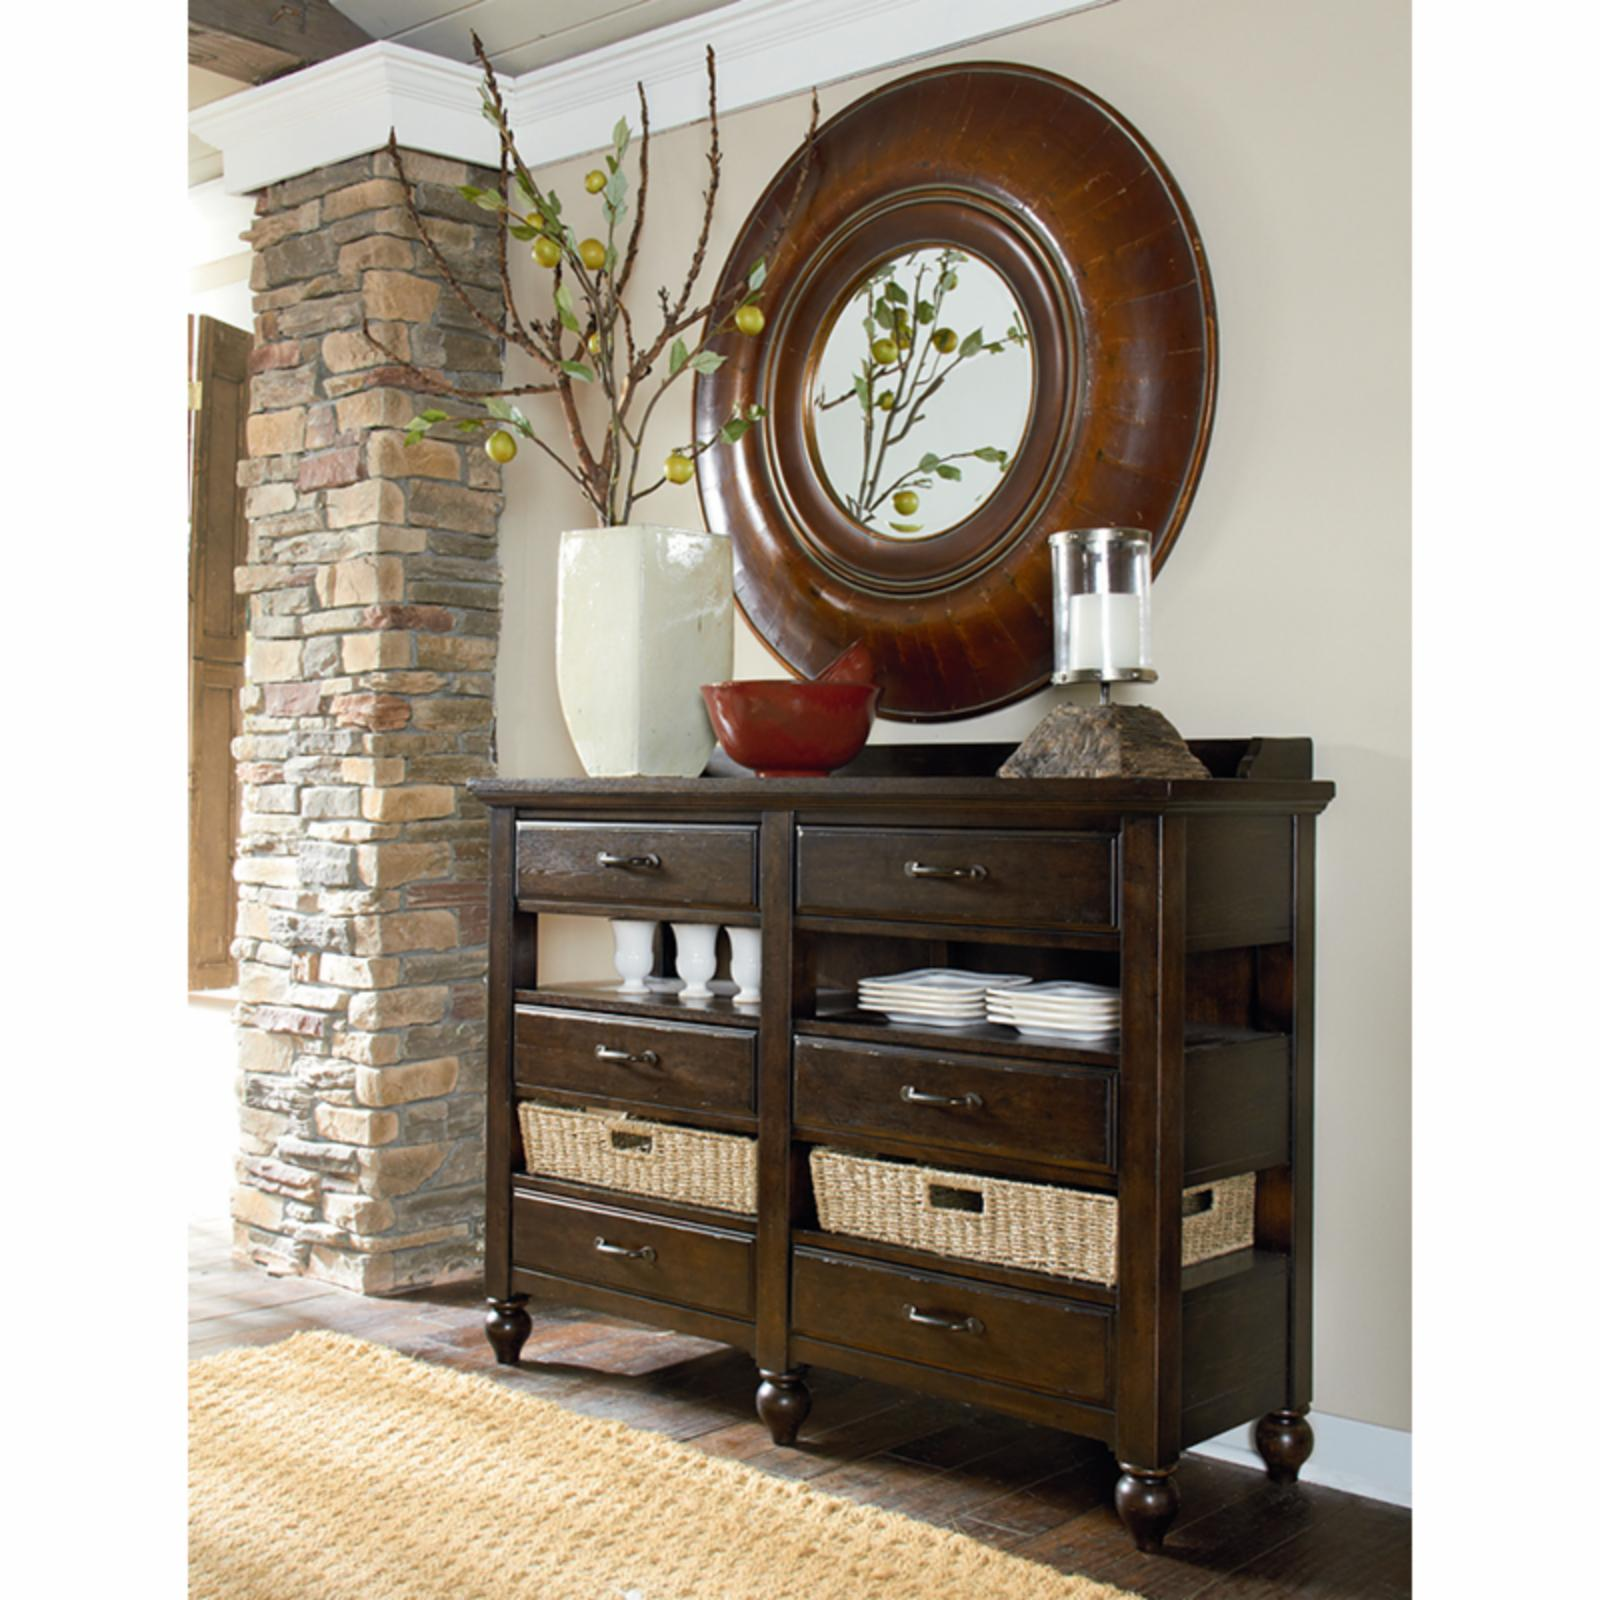 Legacy Classic Furniture Legacy Classic Thatcher Sideboar...